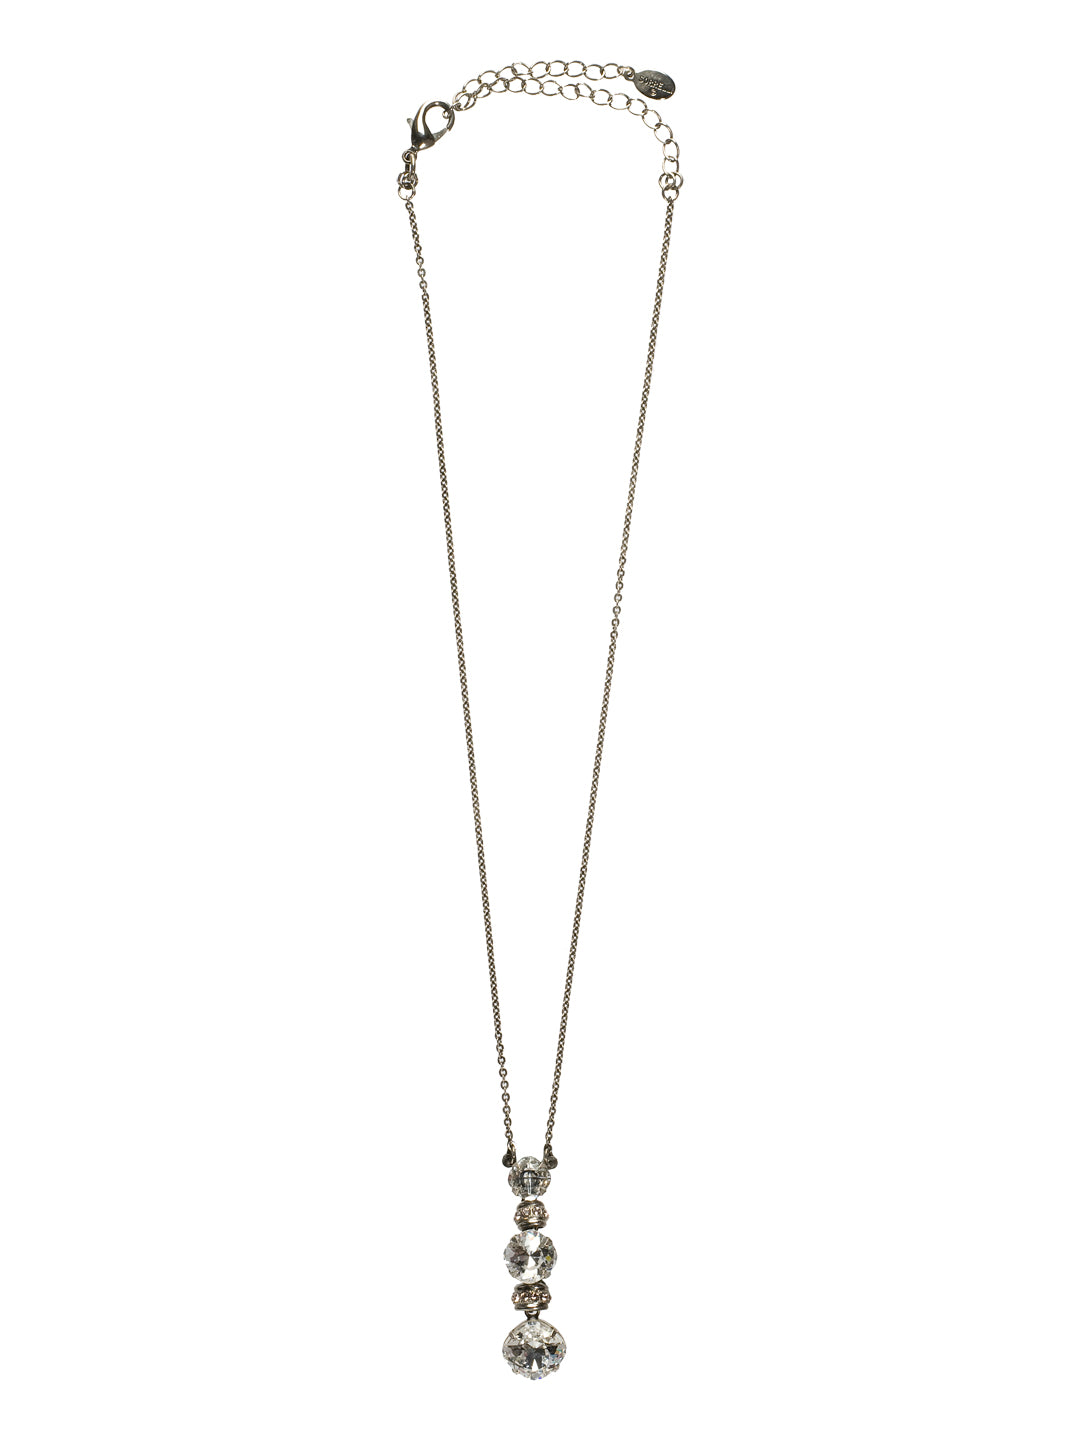 Three-Tiered Drop Crystal Pendant Necklace - NCF21ASSNB